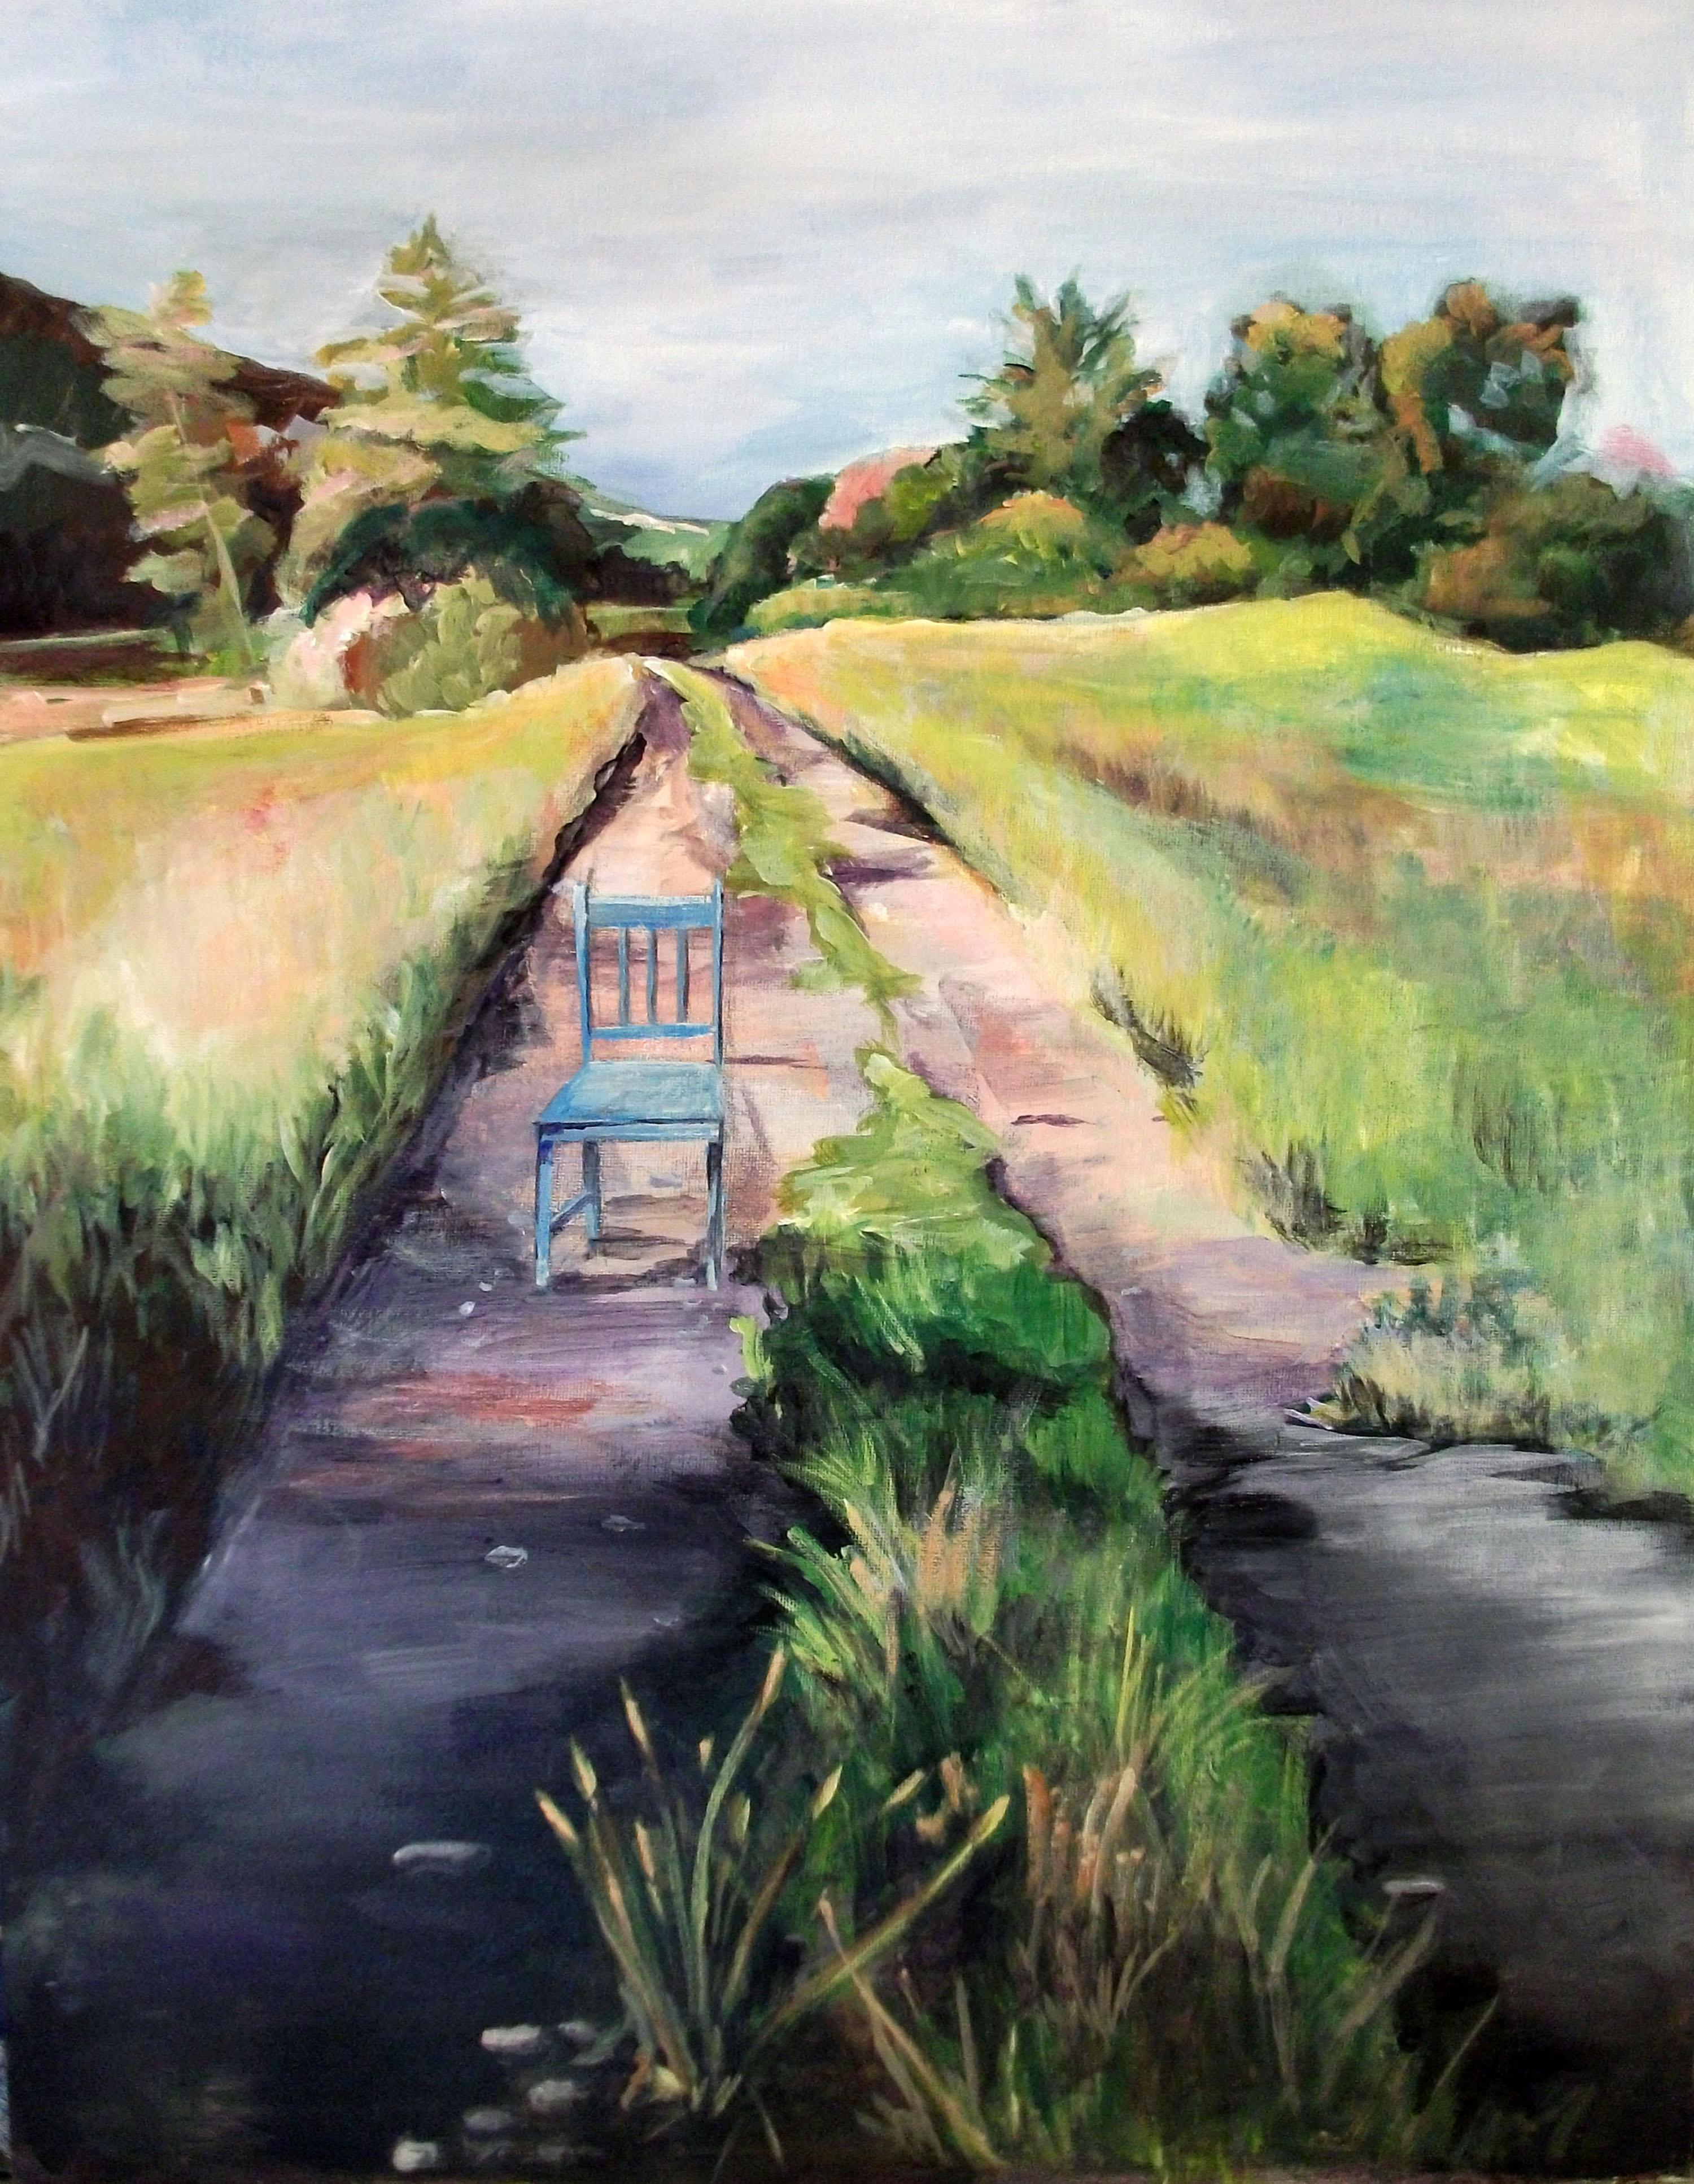 Painting showing ruts of a vehicle and a chair in a rural setting